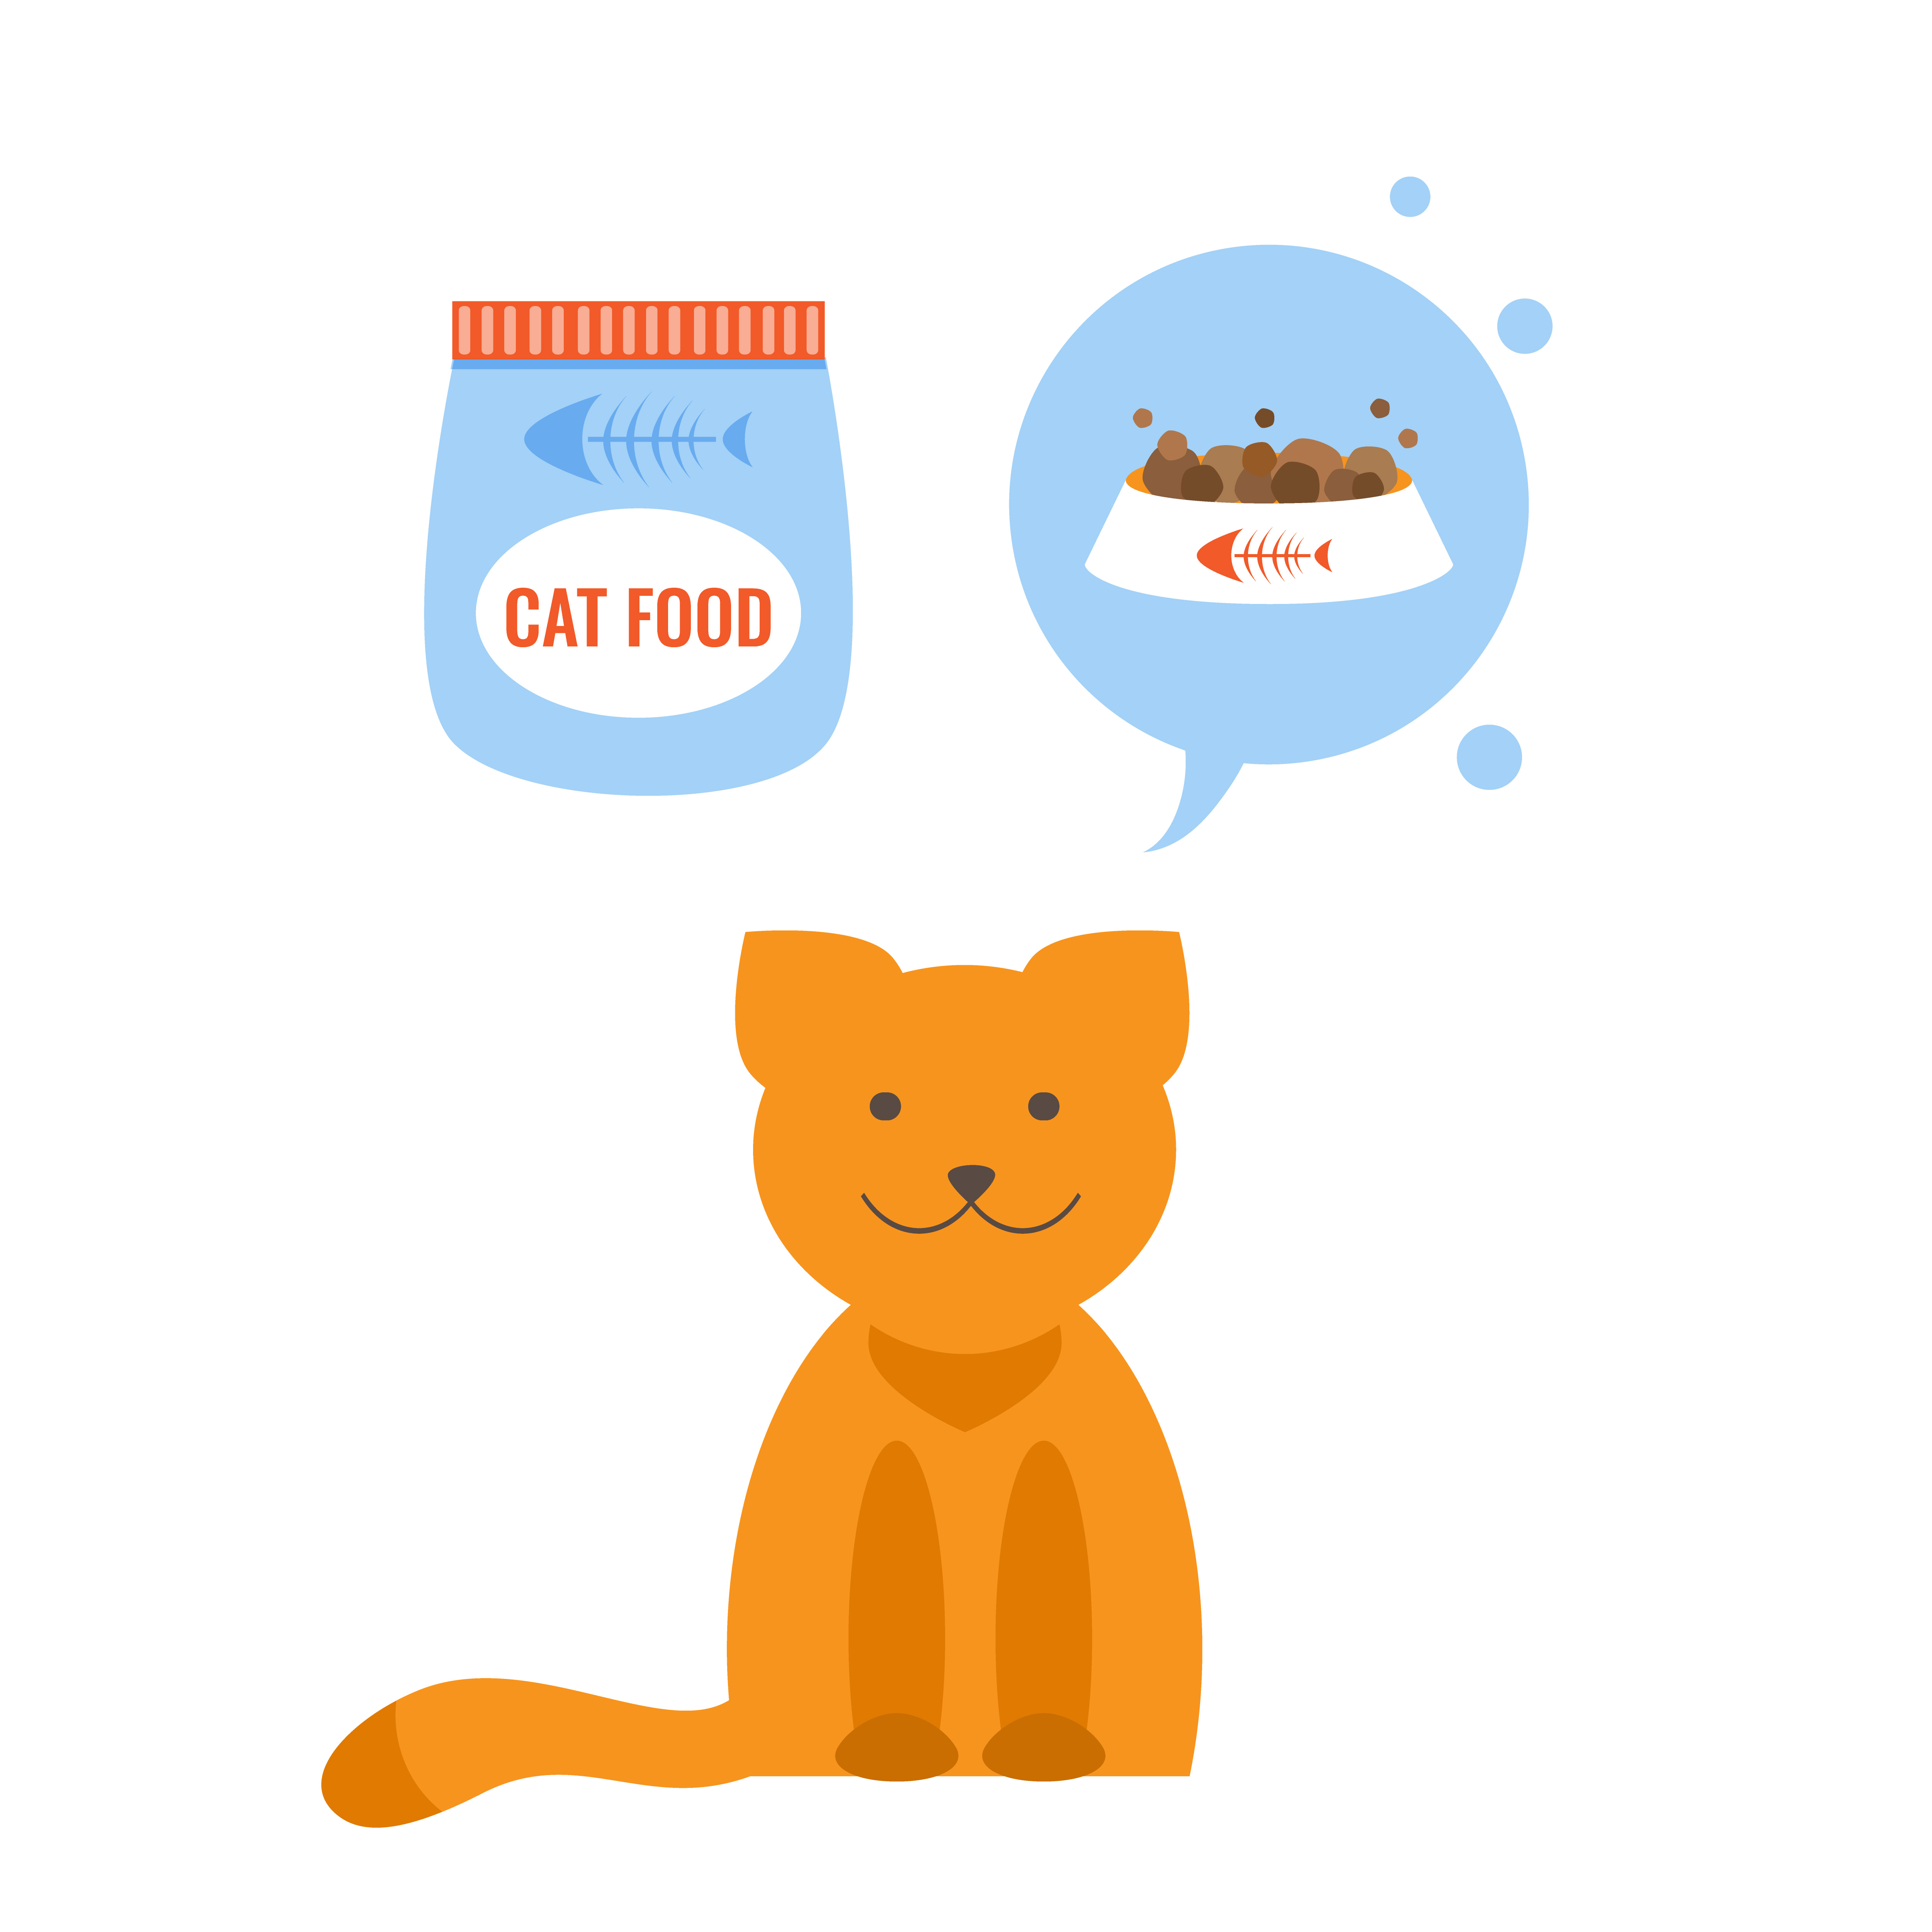 A ginger cat thinking about his favorite food options. Favorite option is one of our best cat food choices